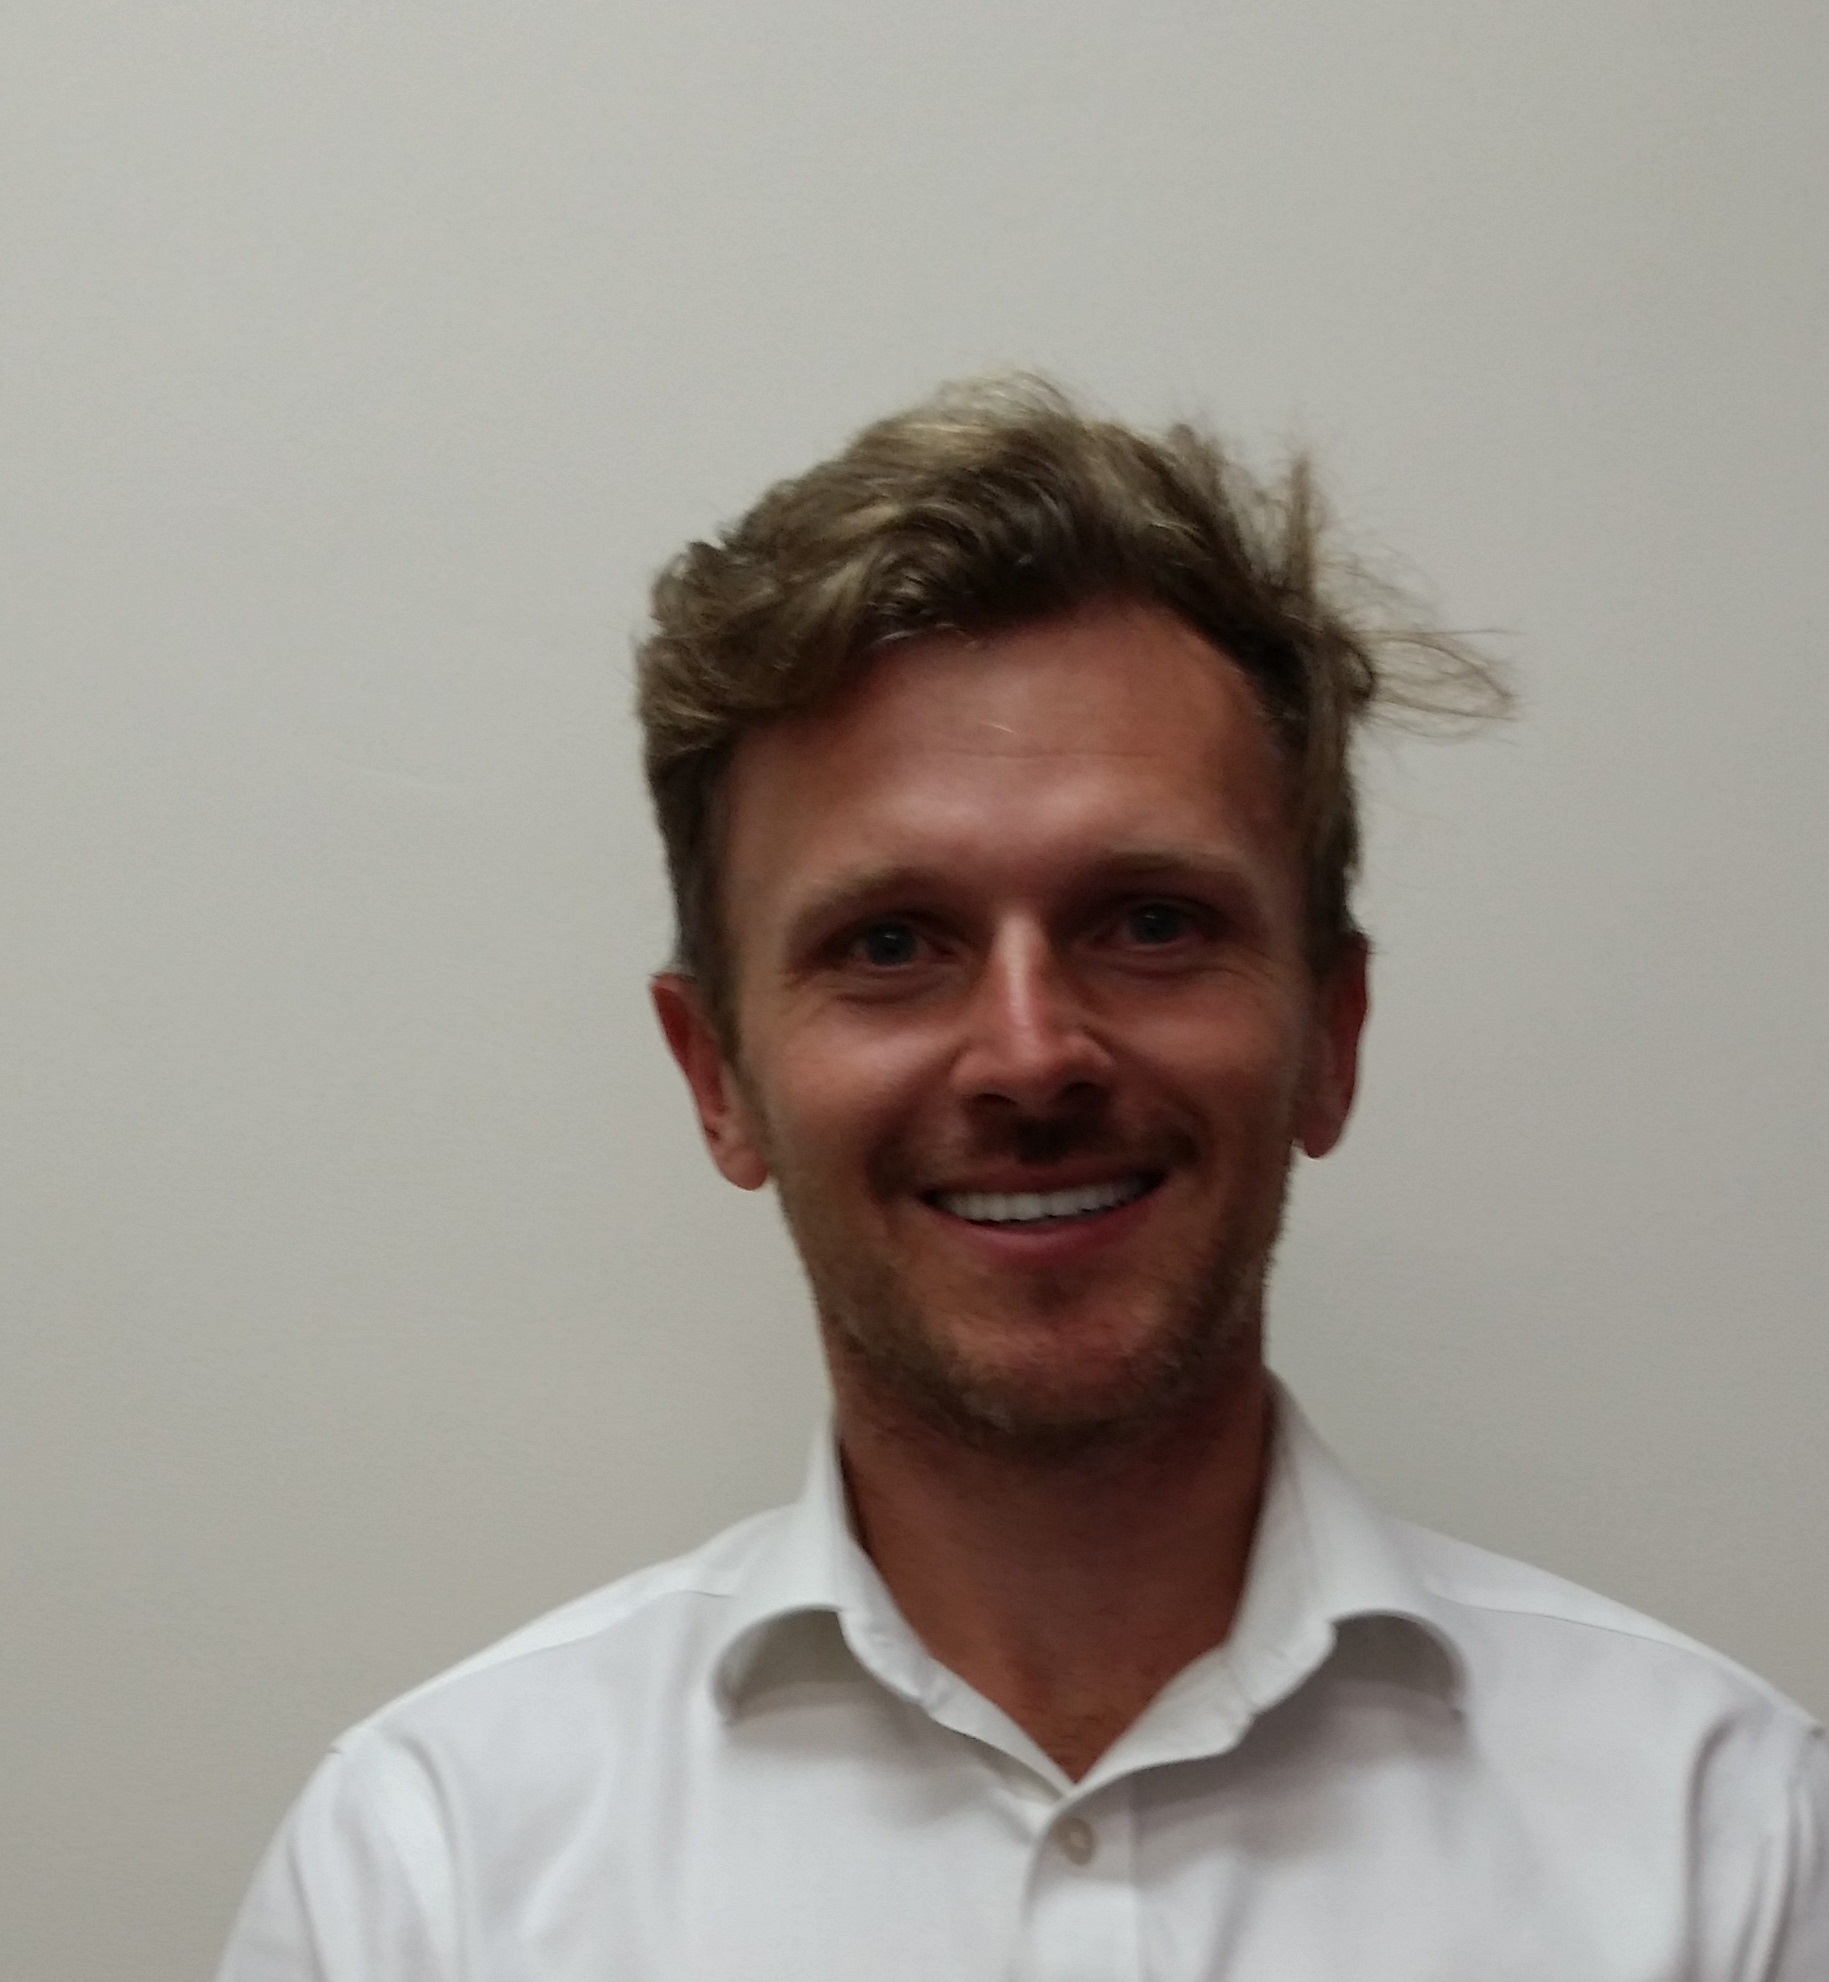 Rhys Duncan, Primary Care Manager